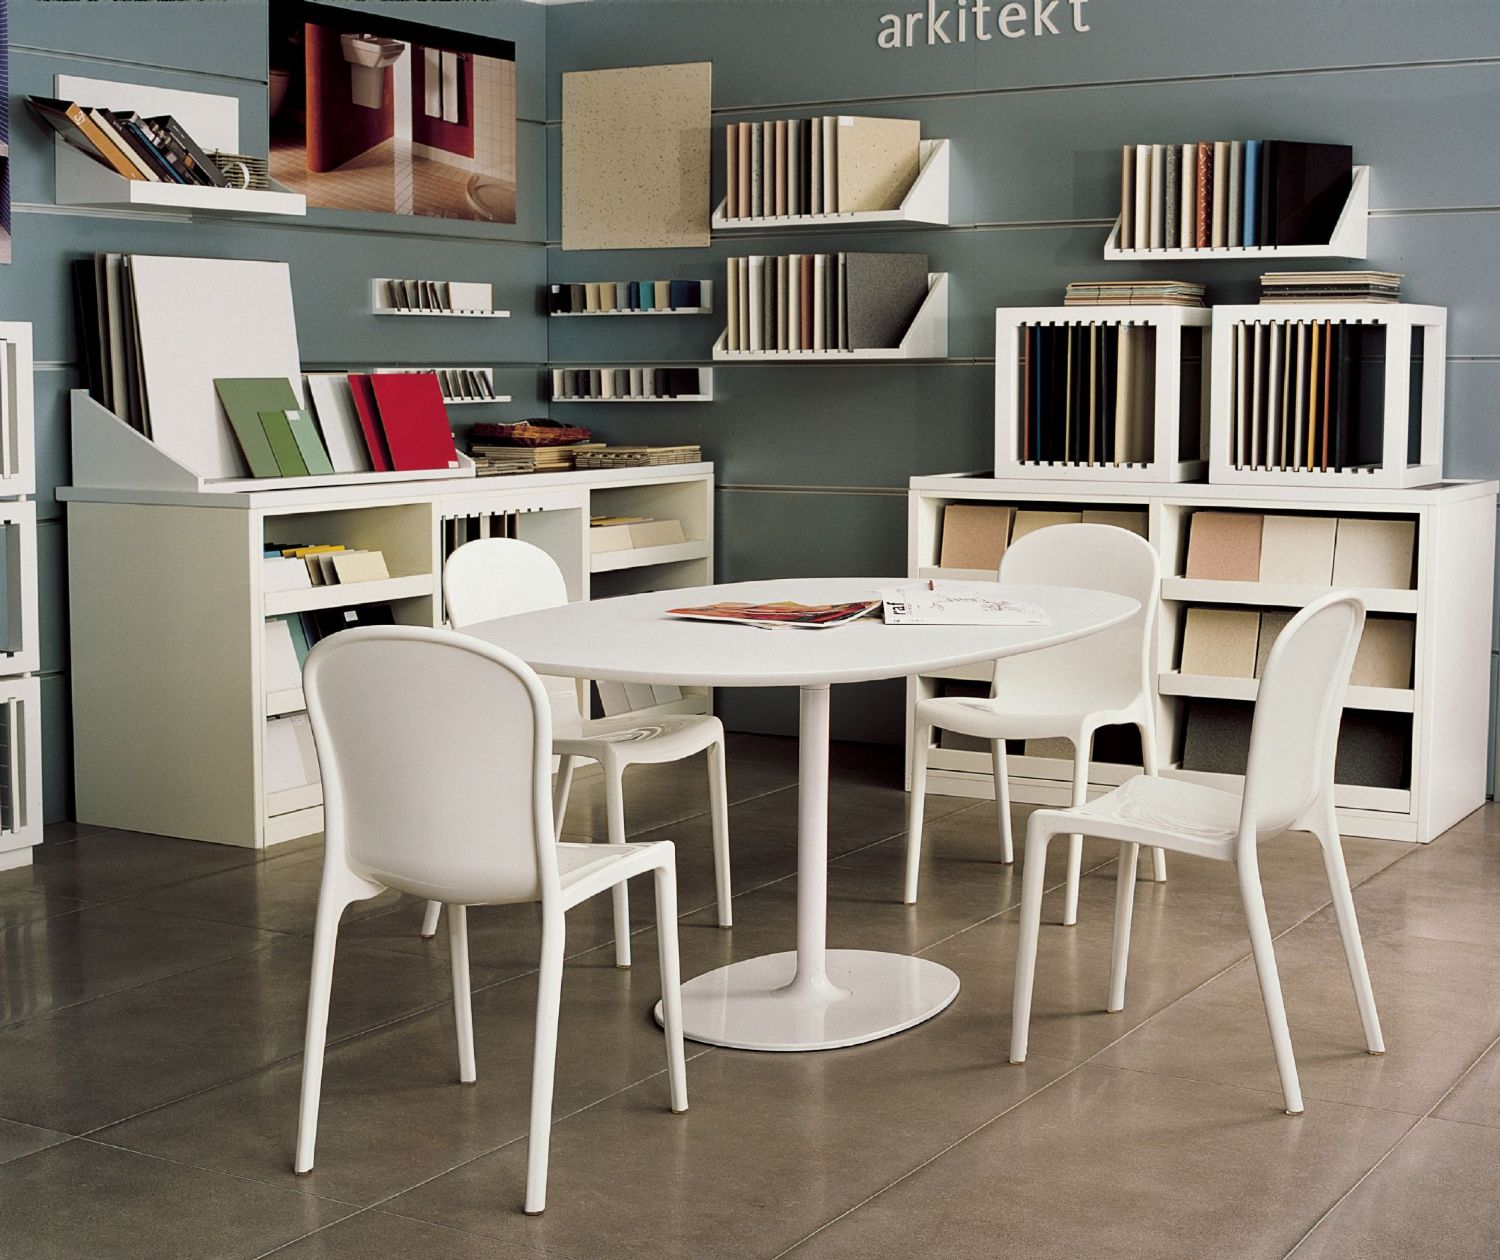 Victoria Polycarbonate Modern Dining Chair White ISP033-GWHI - 1